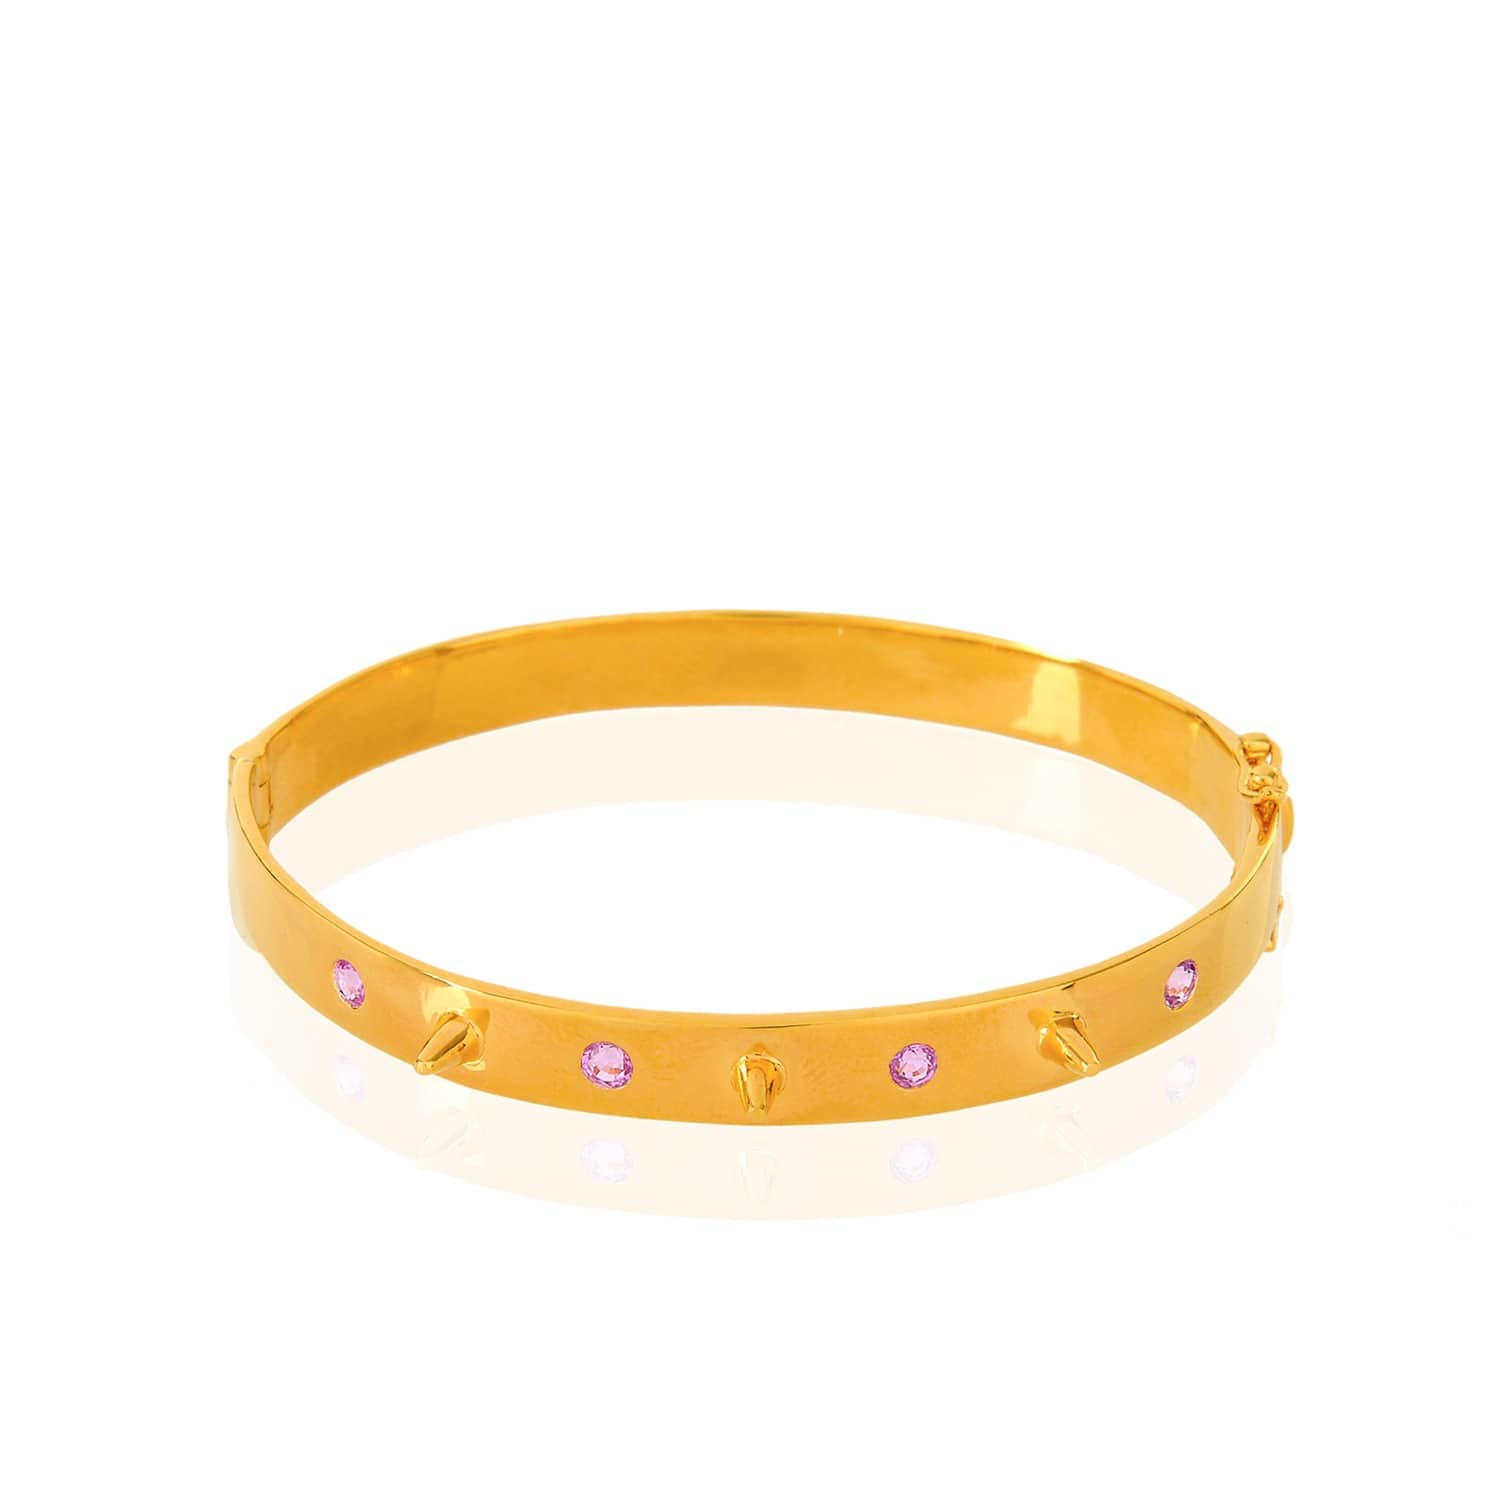 de saphirs products gold and sapphire pink legers cartier bracelet cartiersaphire